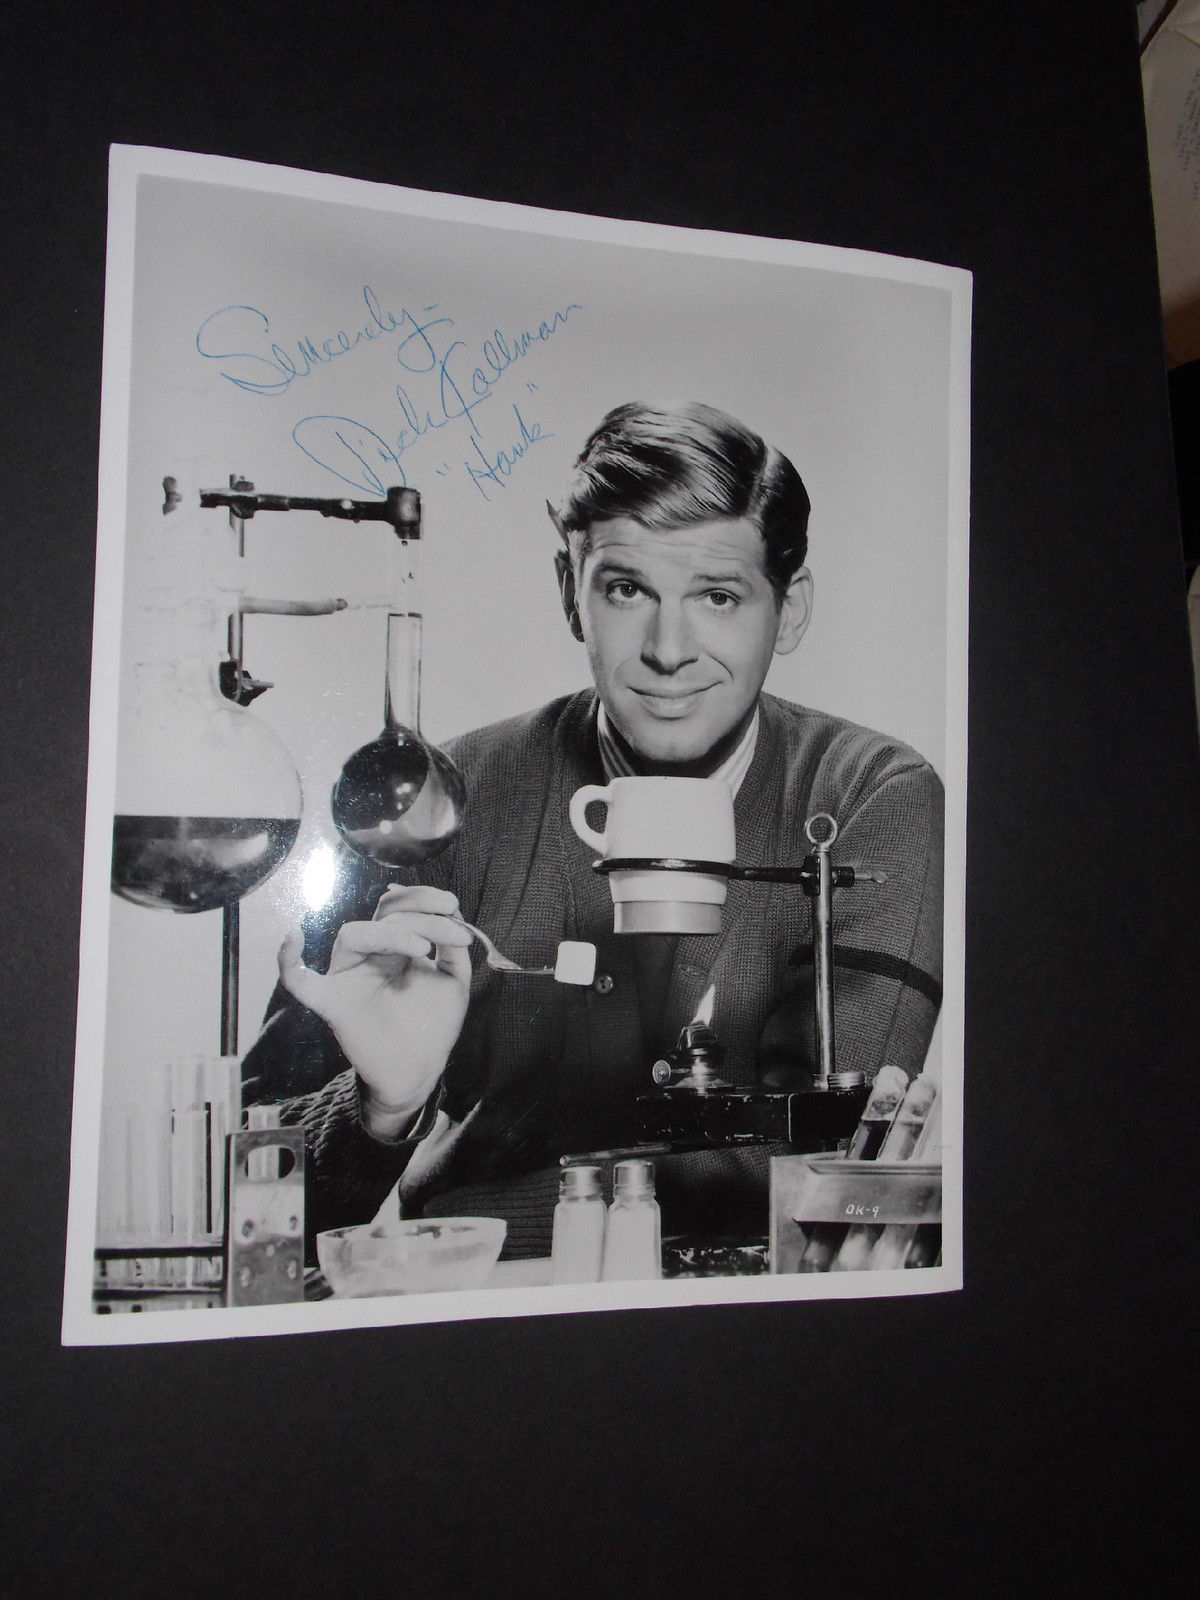 DICK_KALLMAN_SIGNED_VINTAGE_8X10_PORTRAIT_PHOTO_BATMAN_S_LITTLE_LOUIE_GROOVY